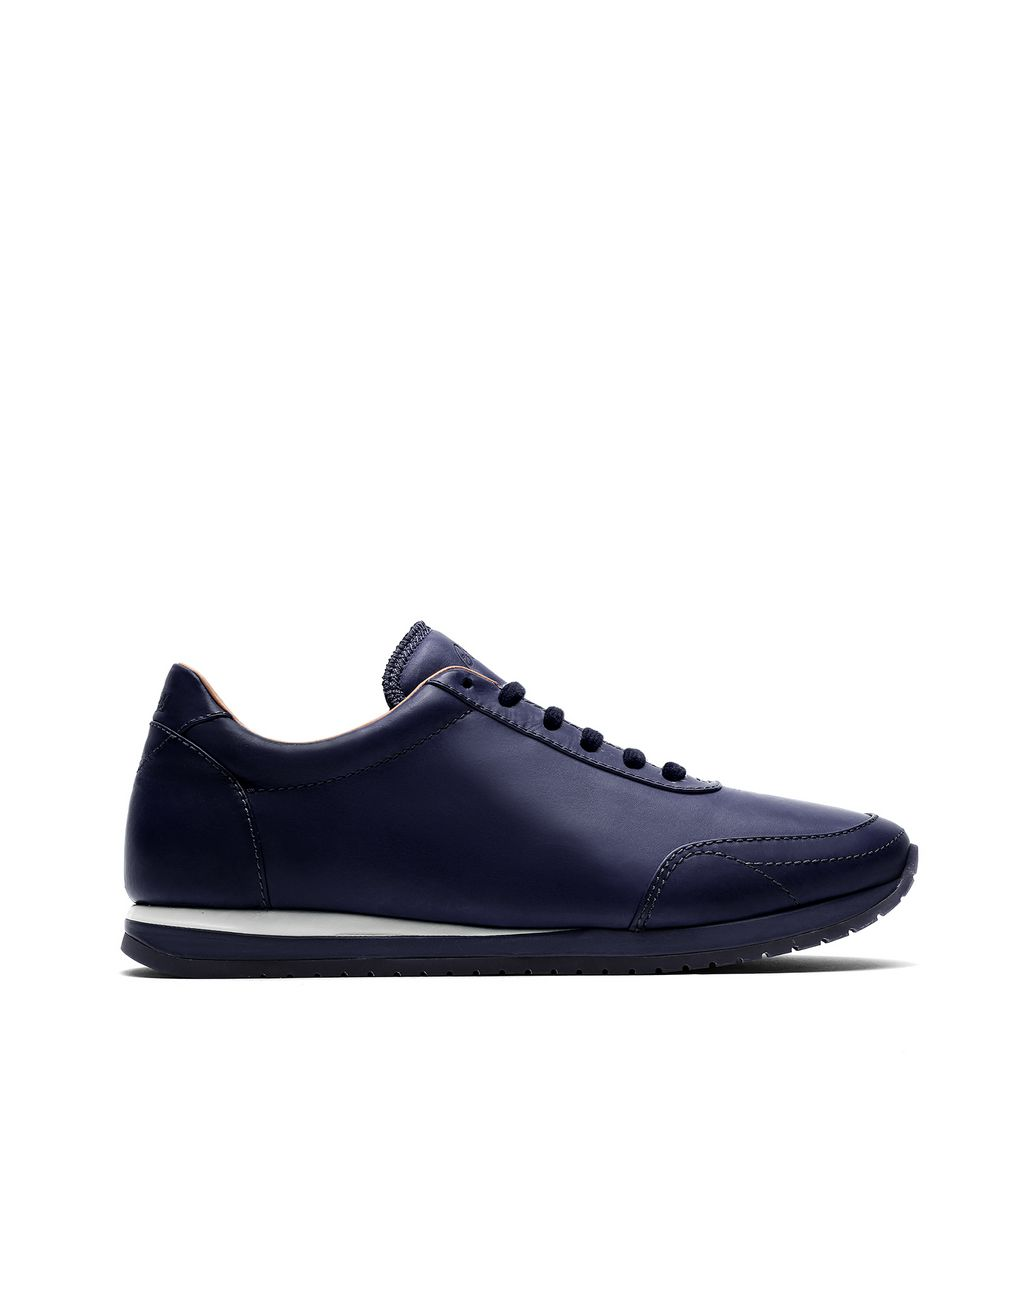 BRIONI Navy Blue and White Runner Sneakers Sneakers Man f